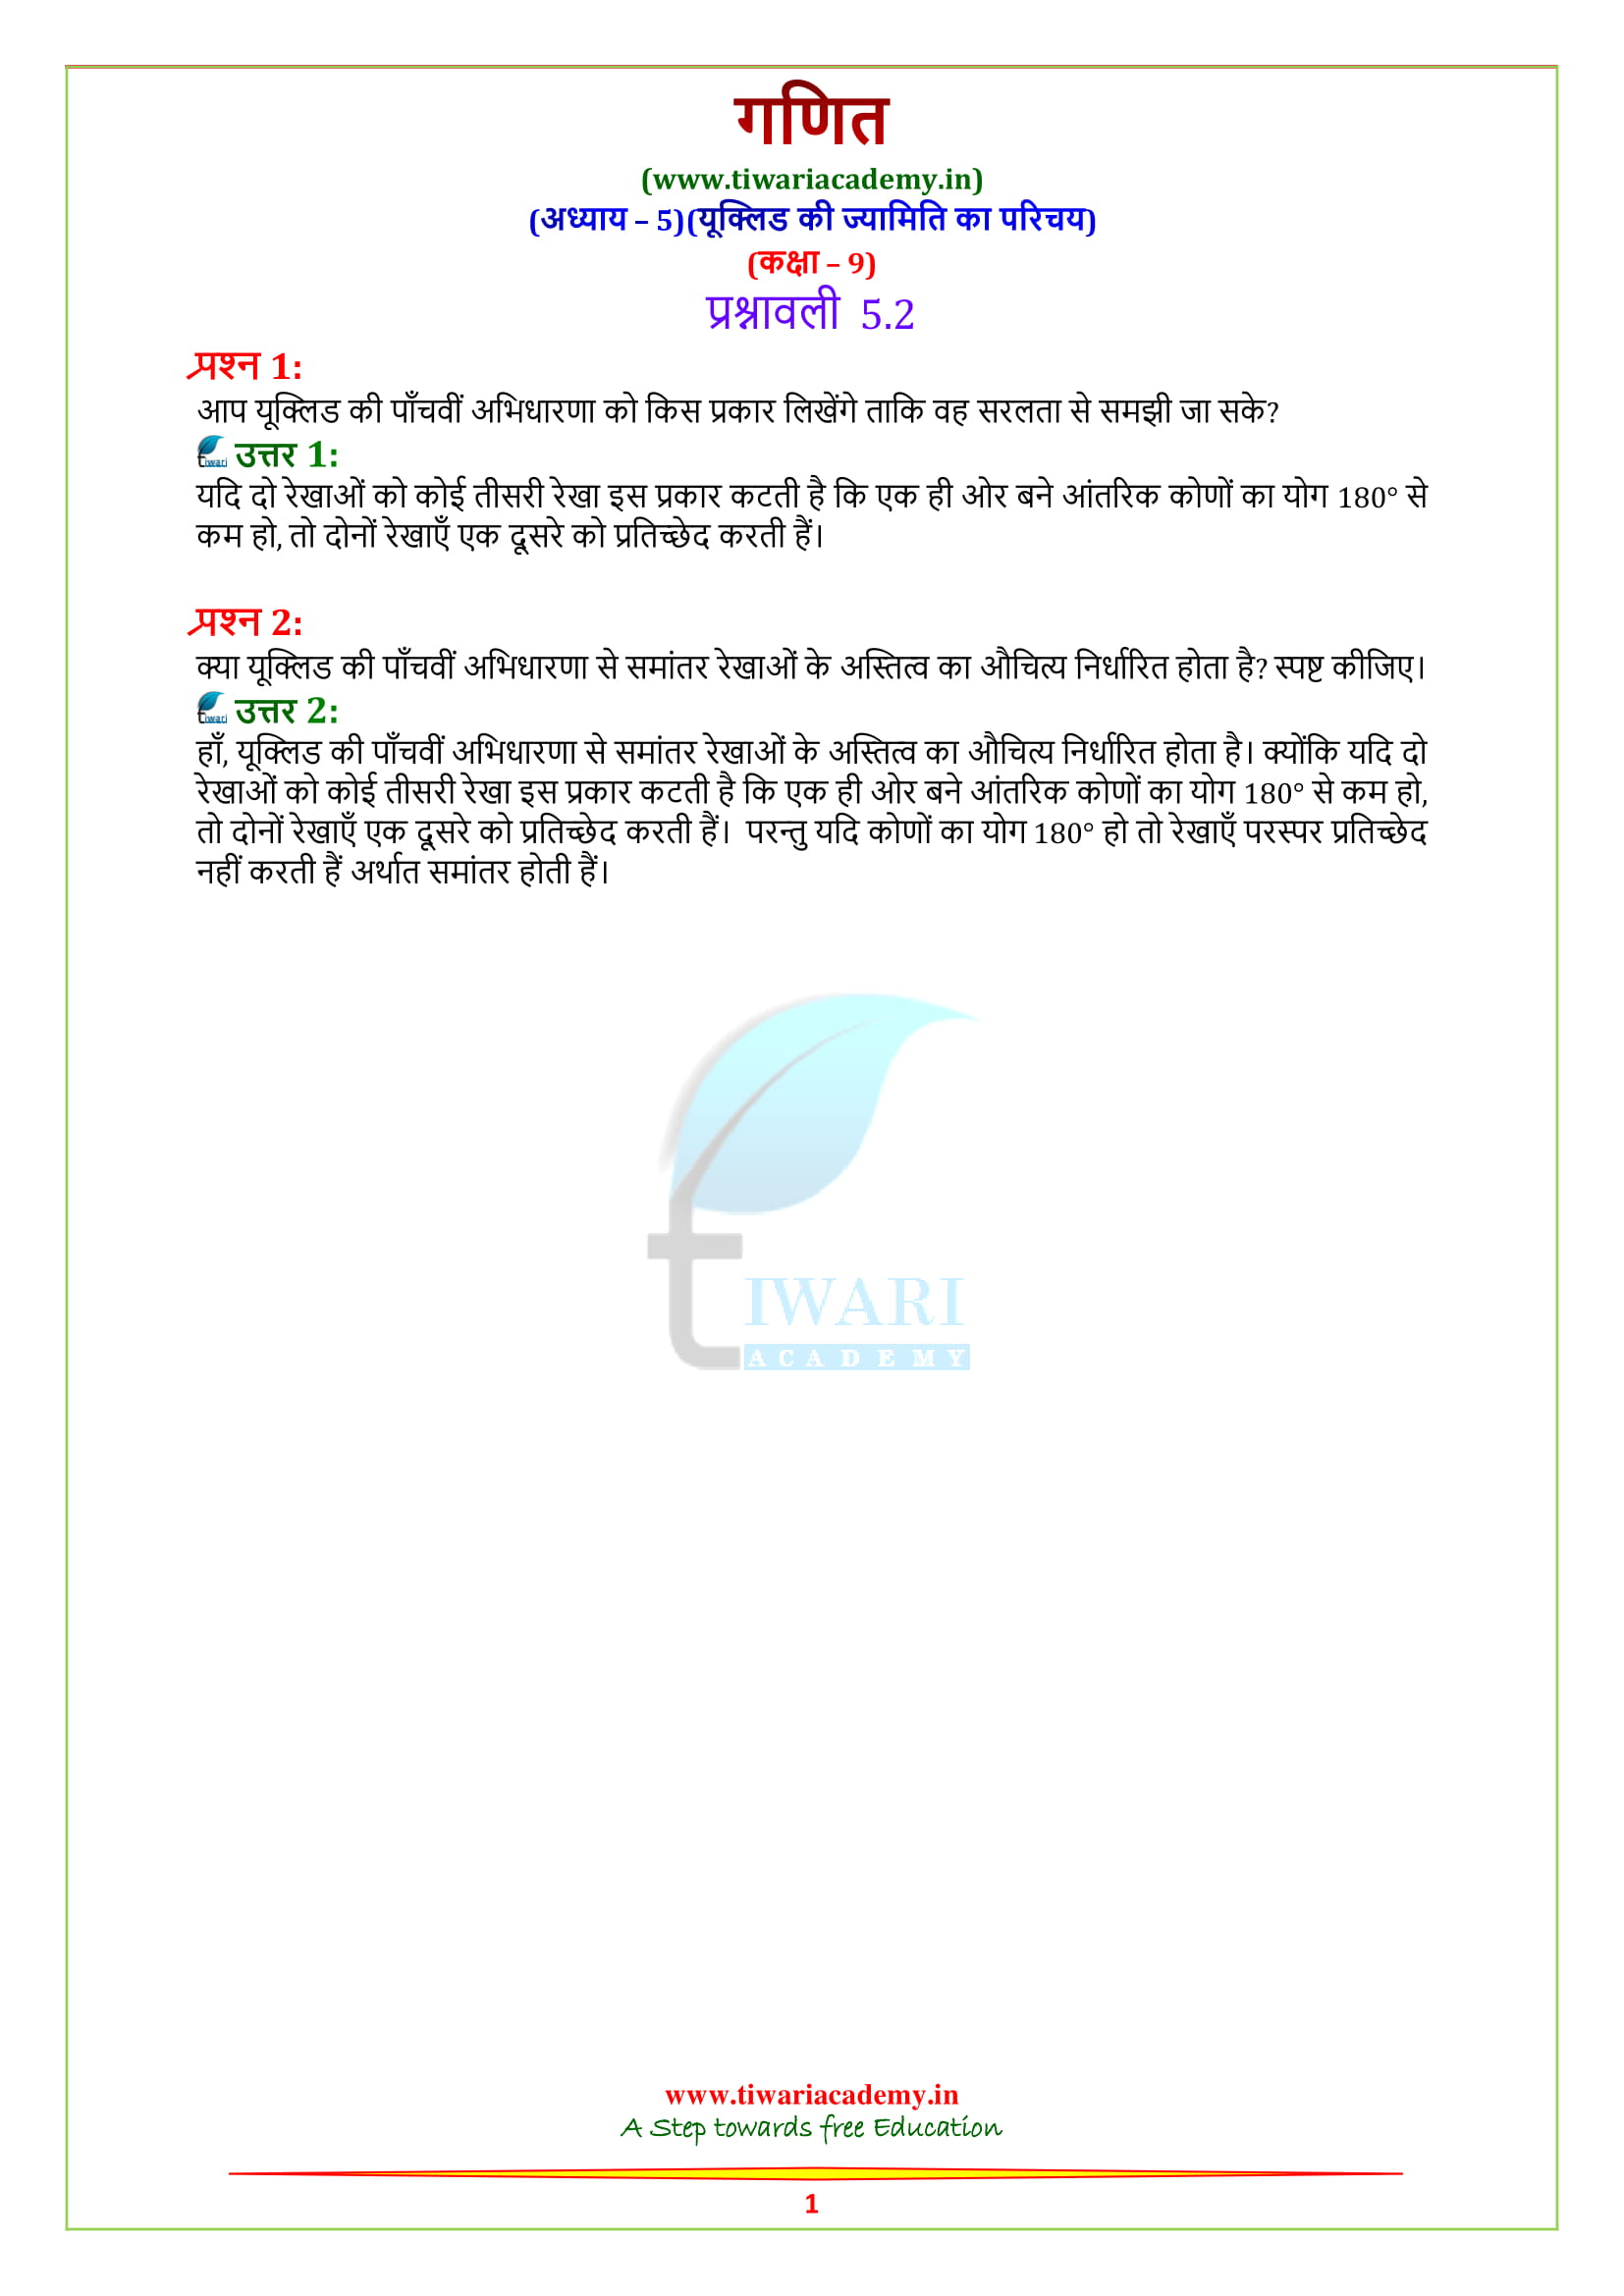 NCERT Solutions for class 9 Maths Chapter 5 exercise 5.2 in hindi pdf